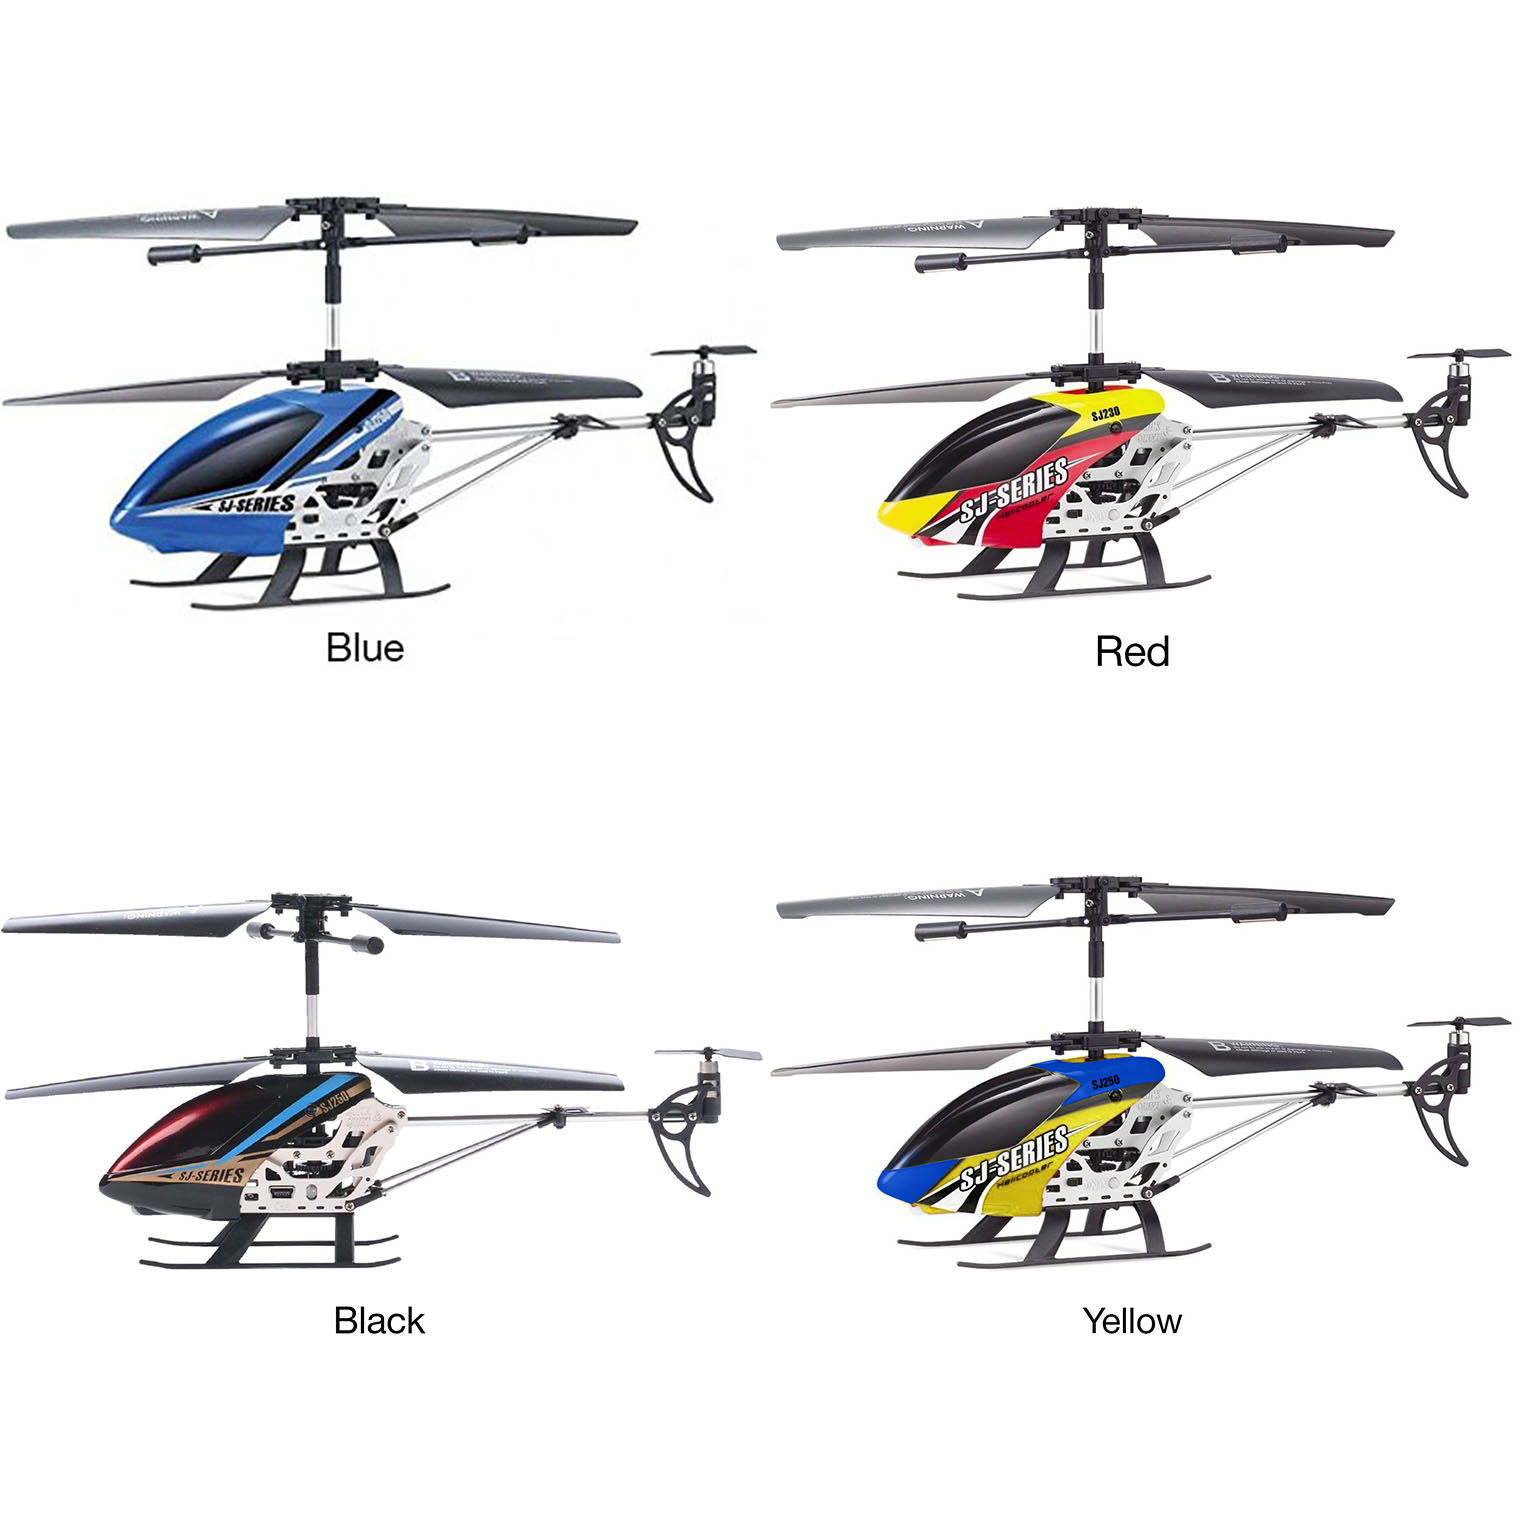 Sj250 Coaxial Gyro Stabilized 3 5ch Helicopter